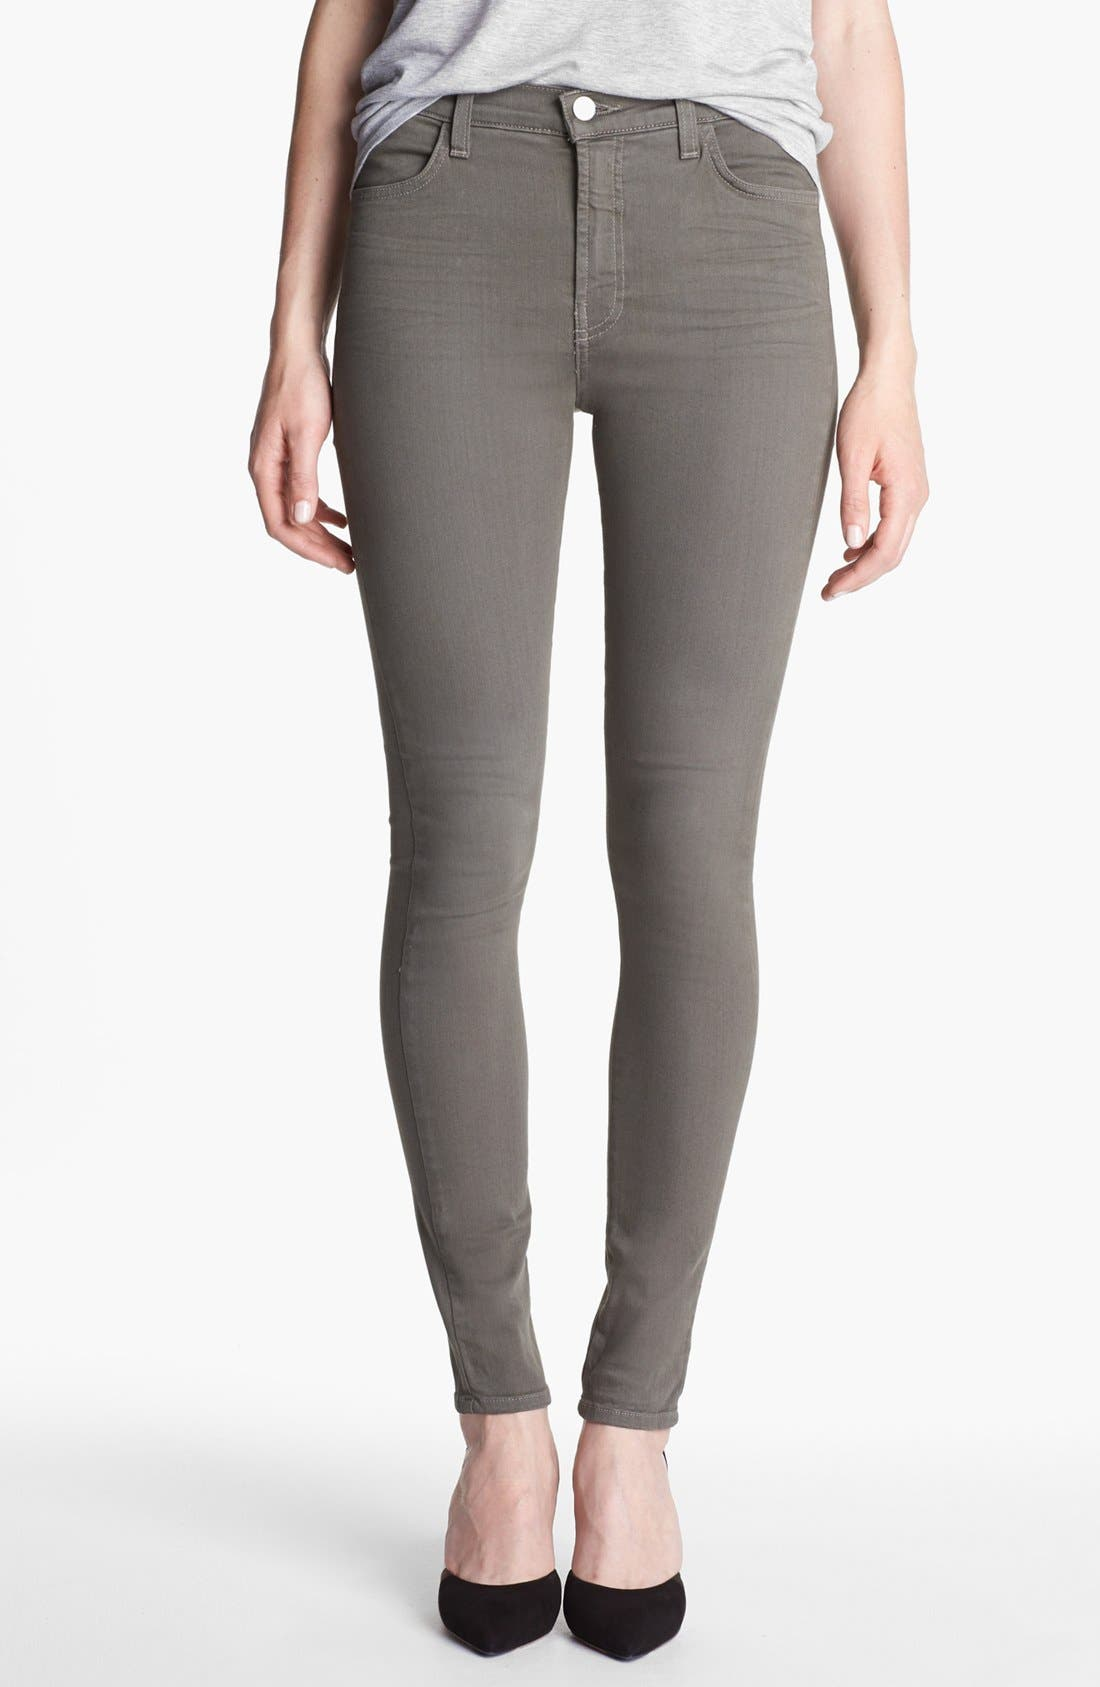 Alternate Image 1 Selected - J Brand 'Maria' High Waist Skinny Stretch Jeans (Washed Mantis)